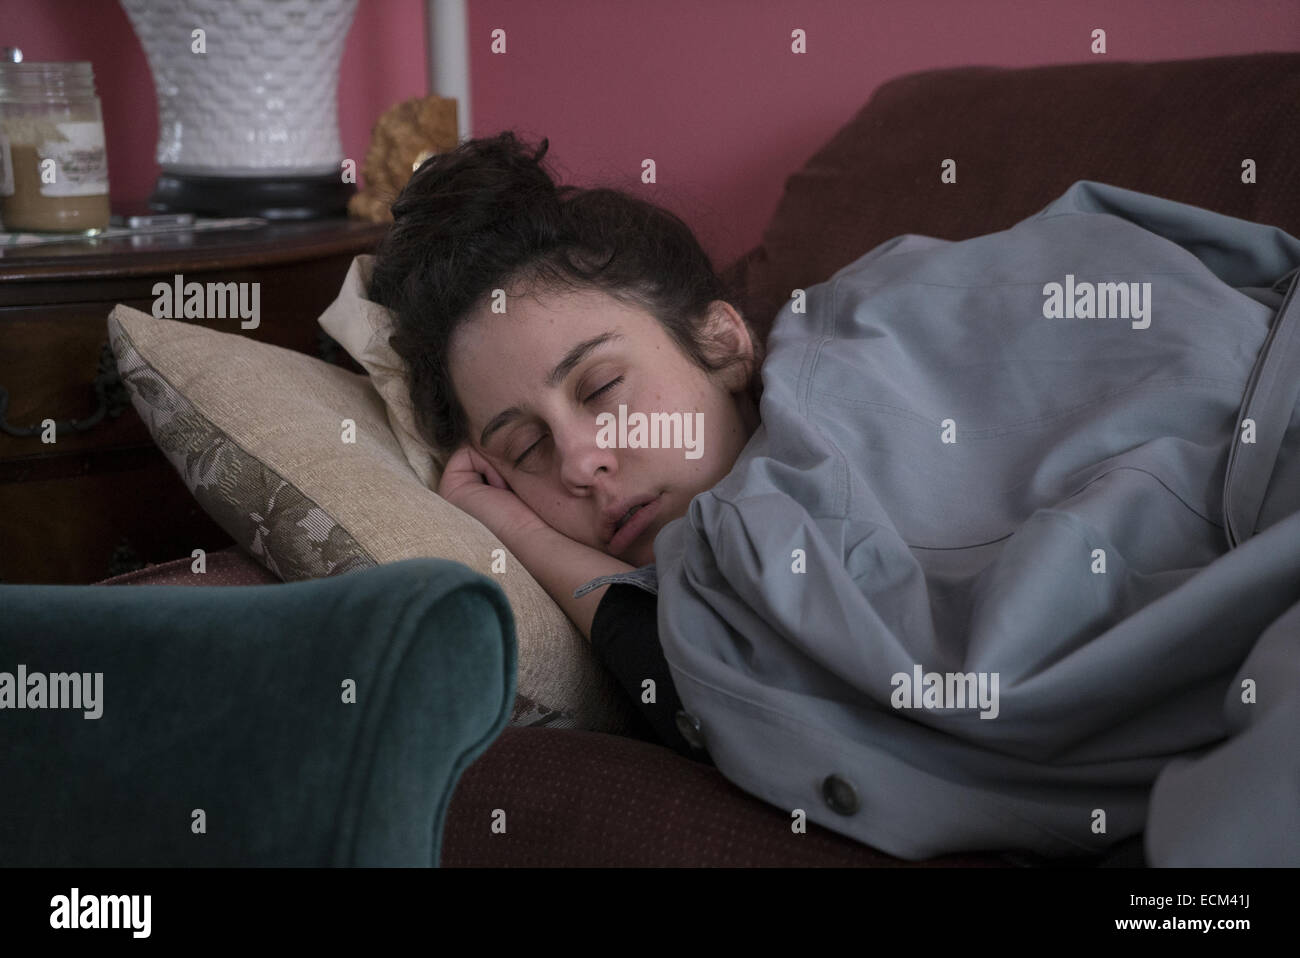 Young woman takes a nap with her coat over her. Brooklyn, NY. - Stock Image